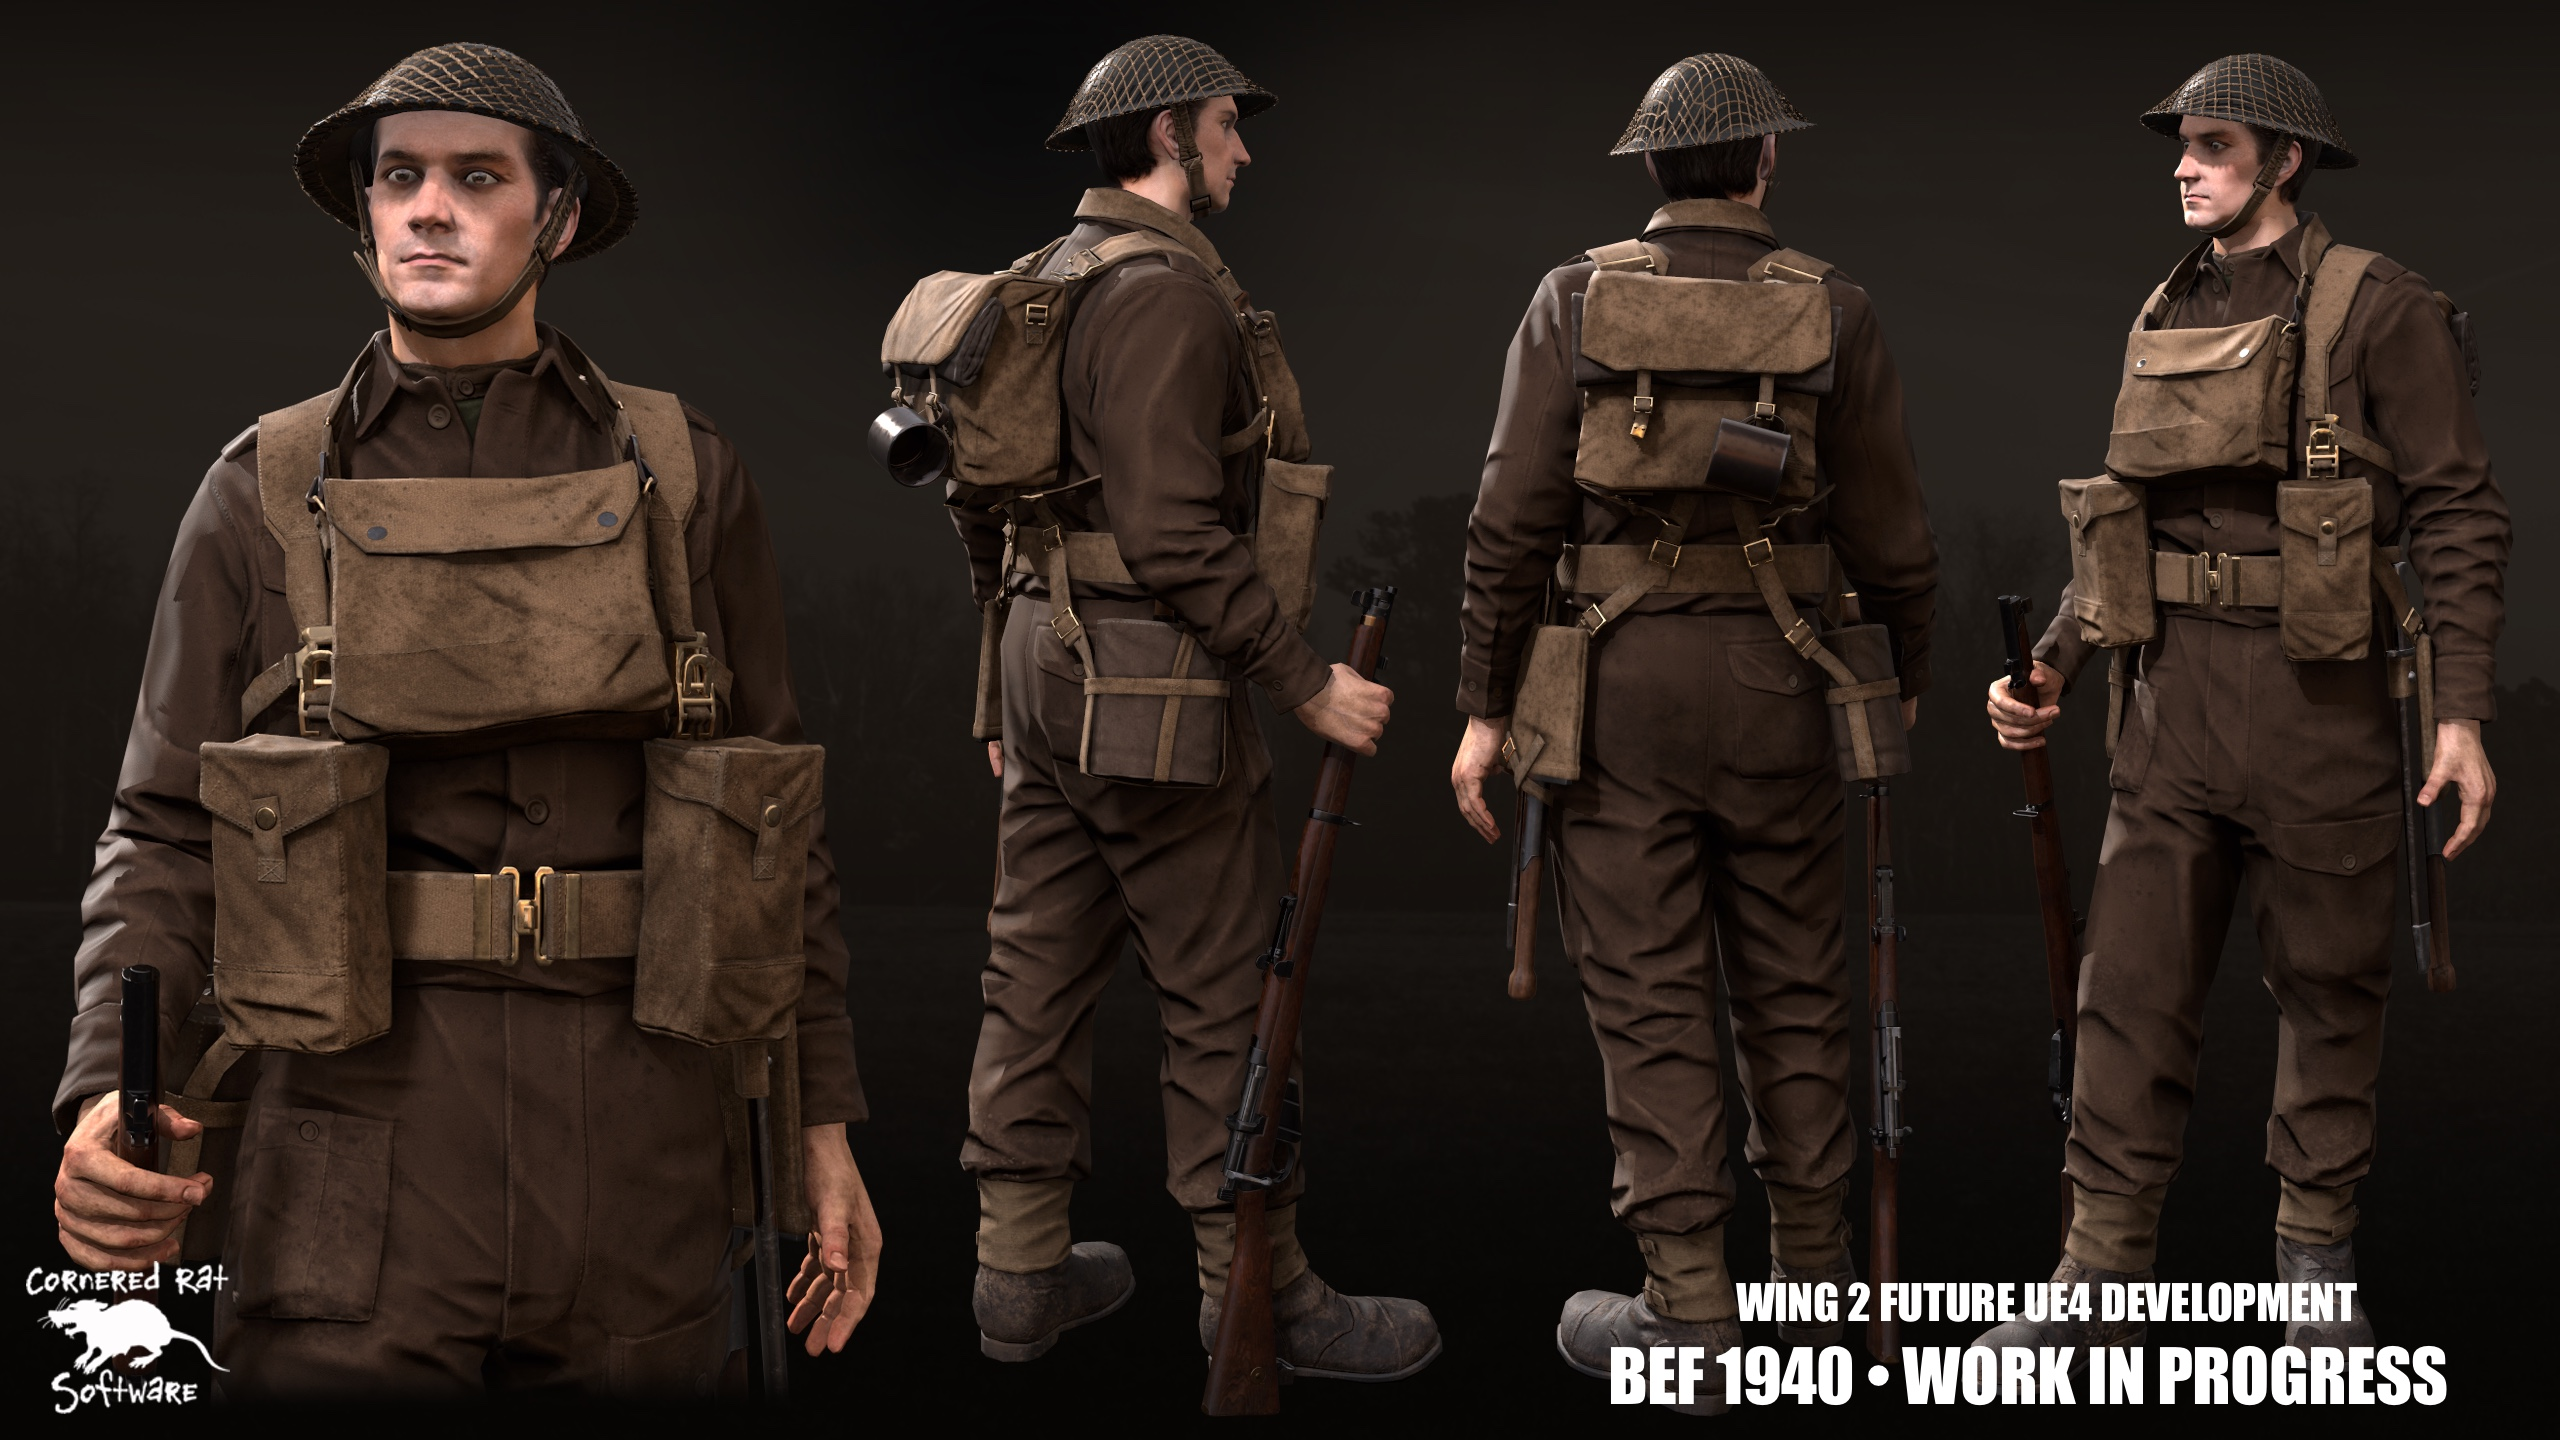 Introducing our new 1940 British Soldier.